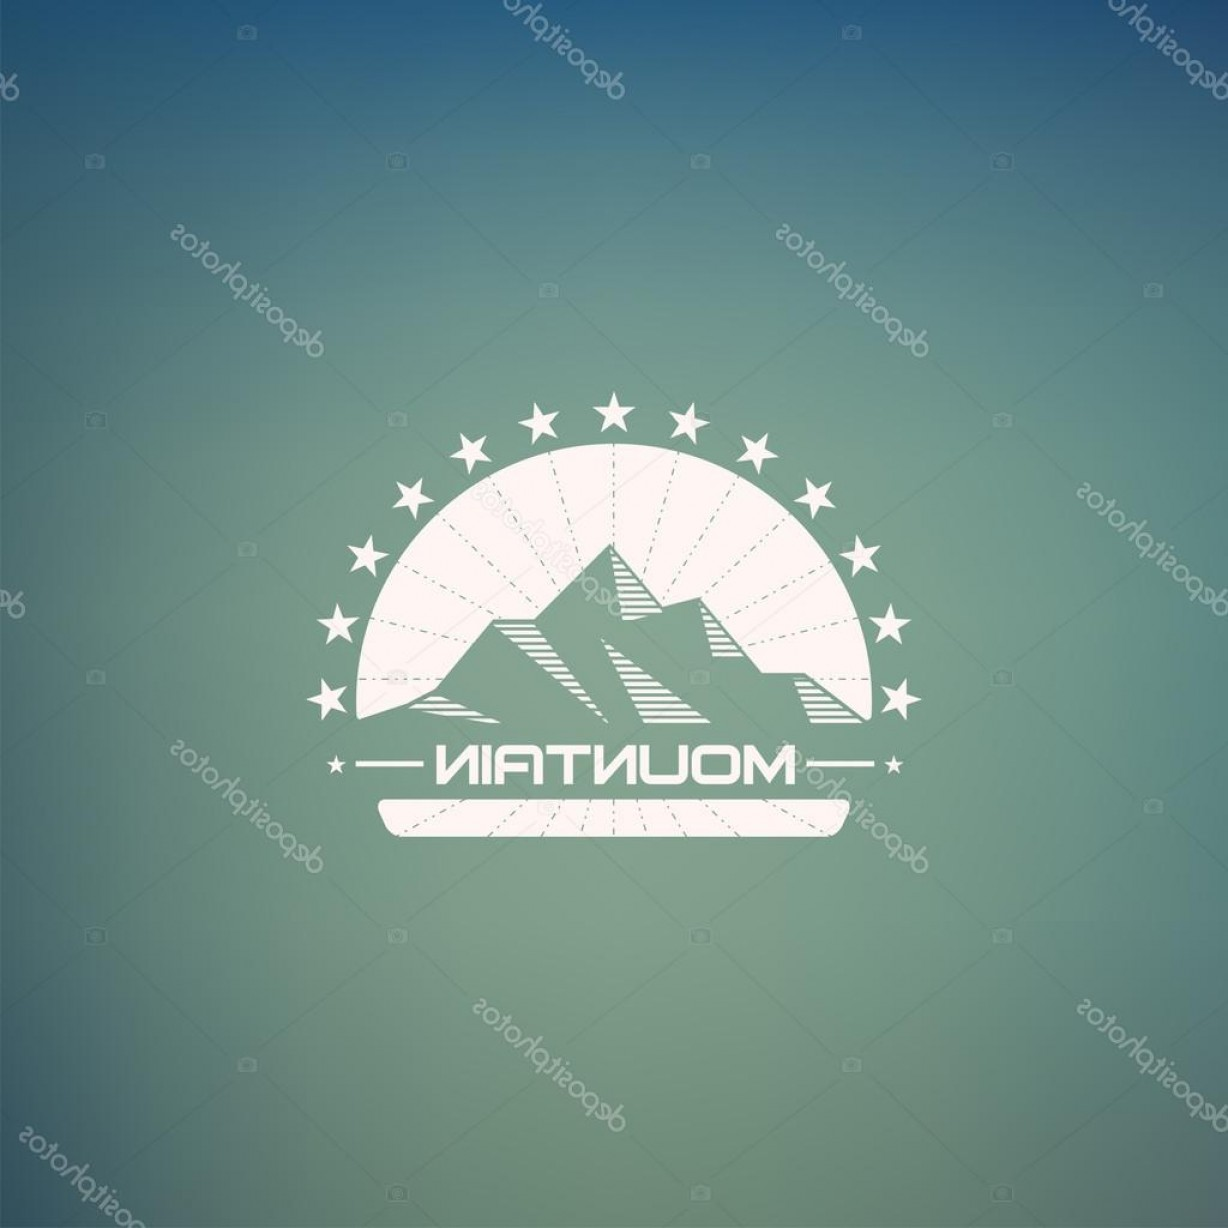 Hipster Logo Vectors Mountain: Stock Illustration Mountain Lineart Logo Mountain Hipster